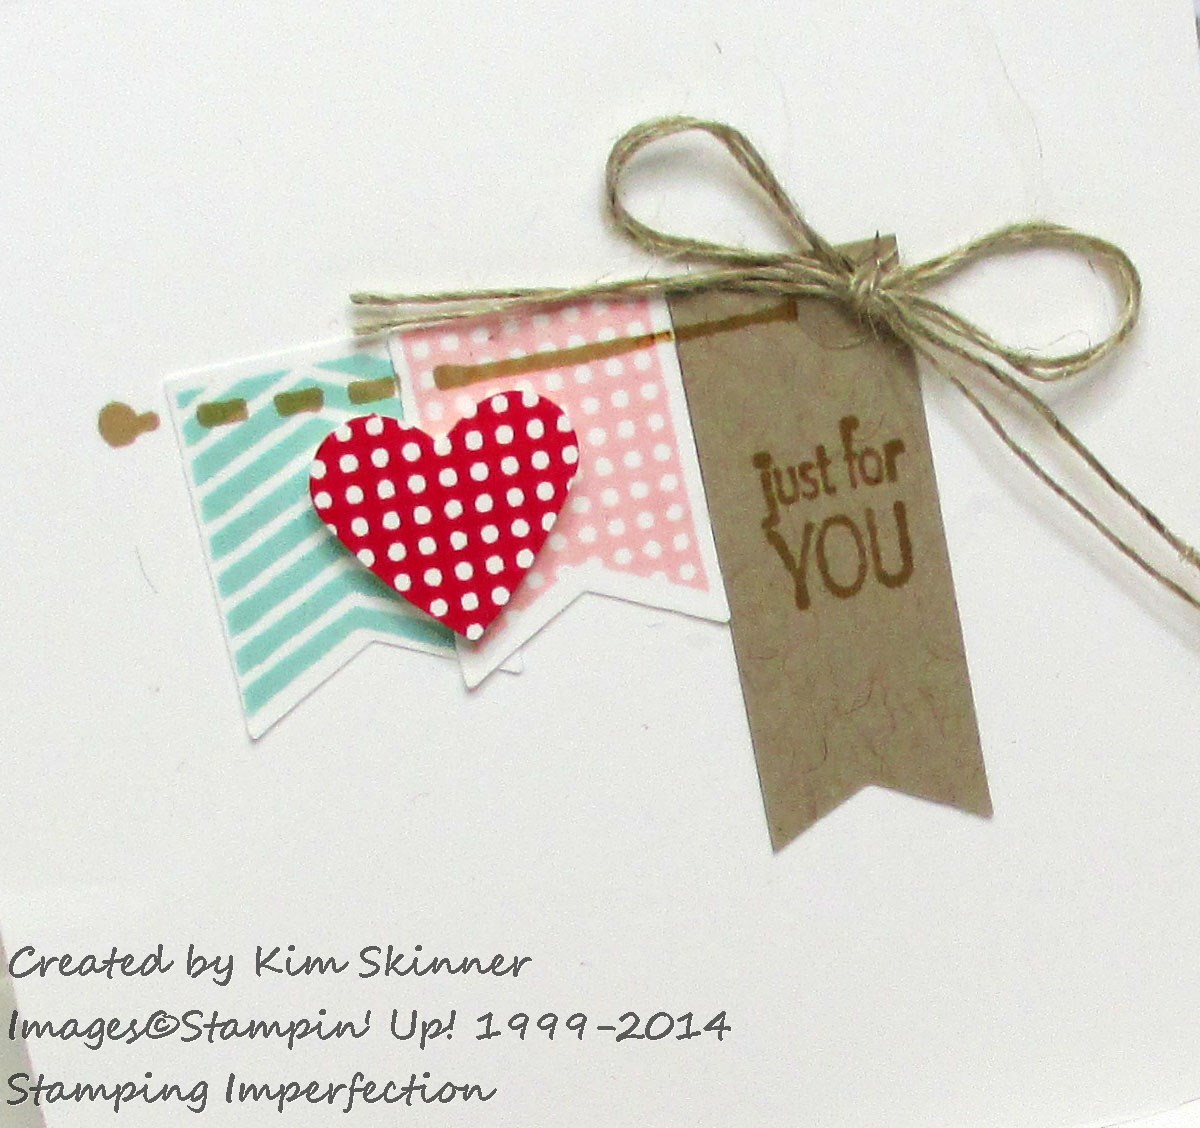 Stamping Imperfection CASED Banner Banter Gift Cards